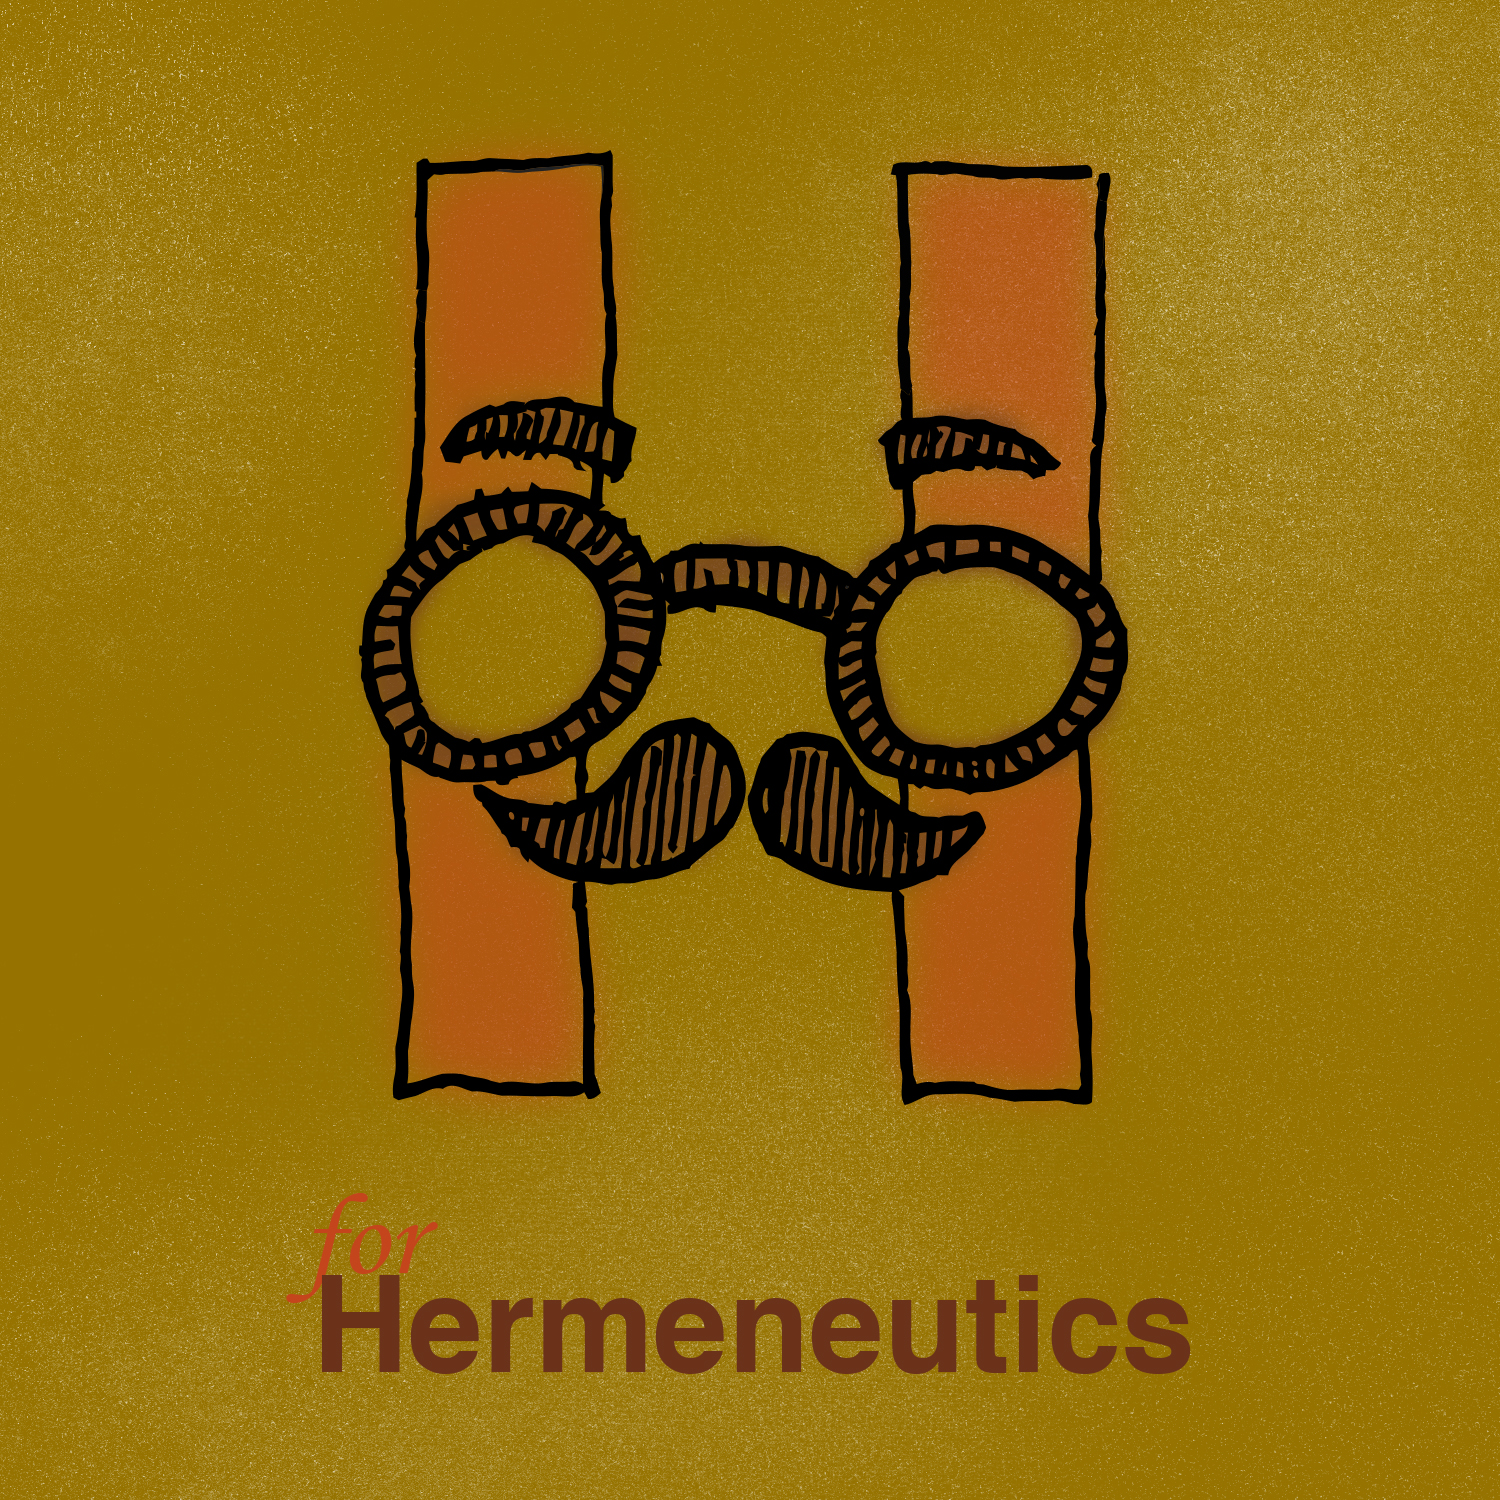 Sunday School H is for Hermeneutics